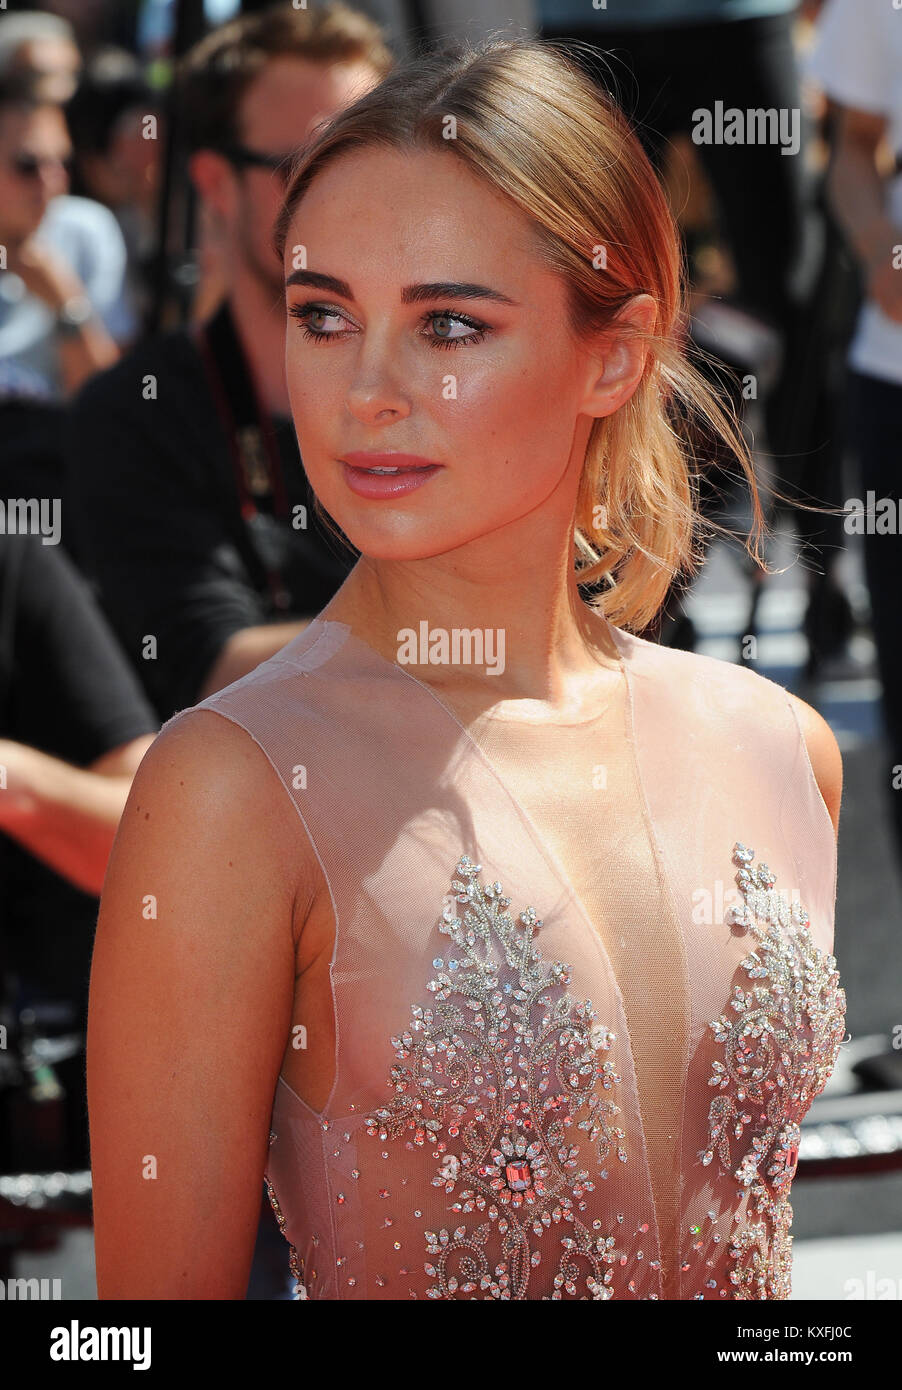 May 21st, 2017 - Cannes  Kimberley Garner attends the 70th Cannes Film Festival 2017. - Stock Image